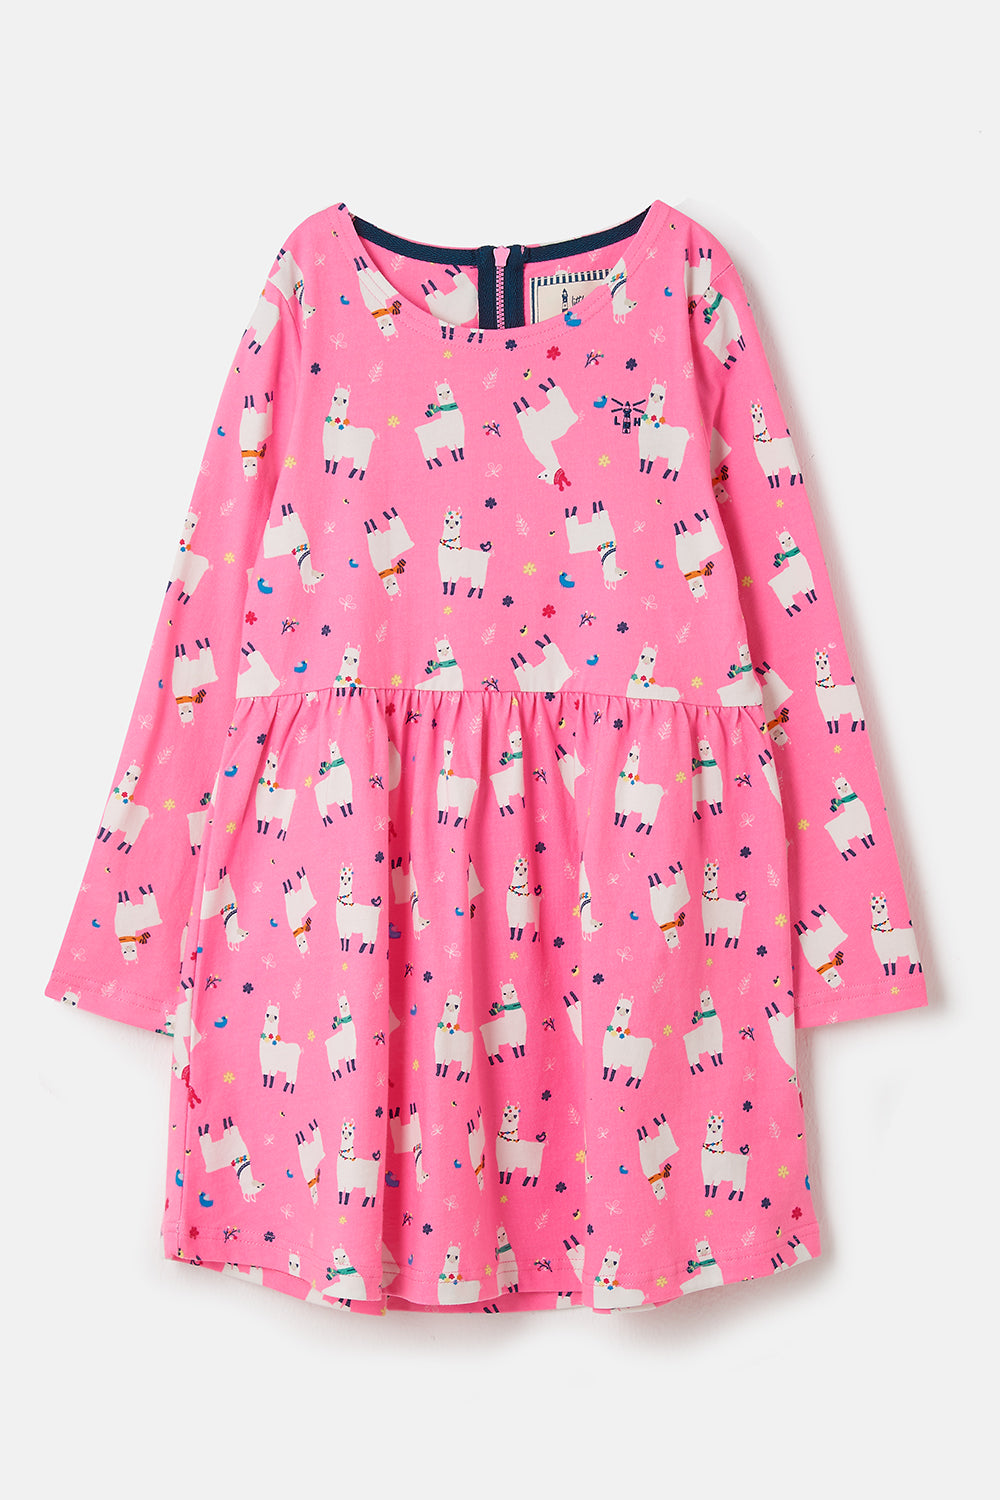 Lighthouse Ellie - Girl's Cotton Dress - Llama Print